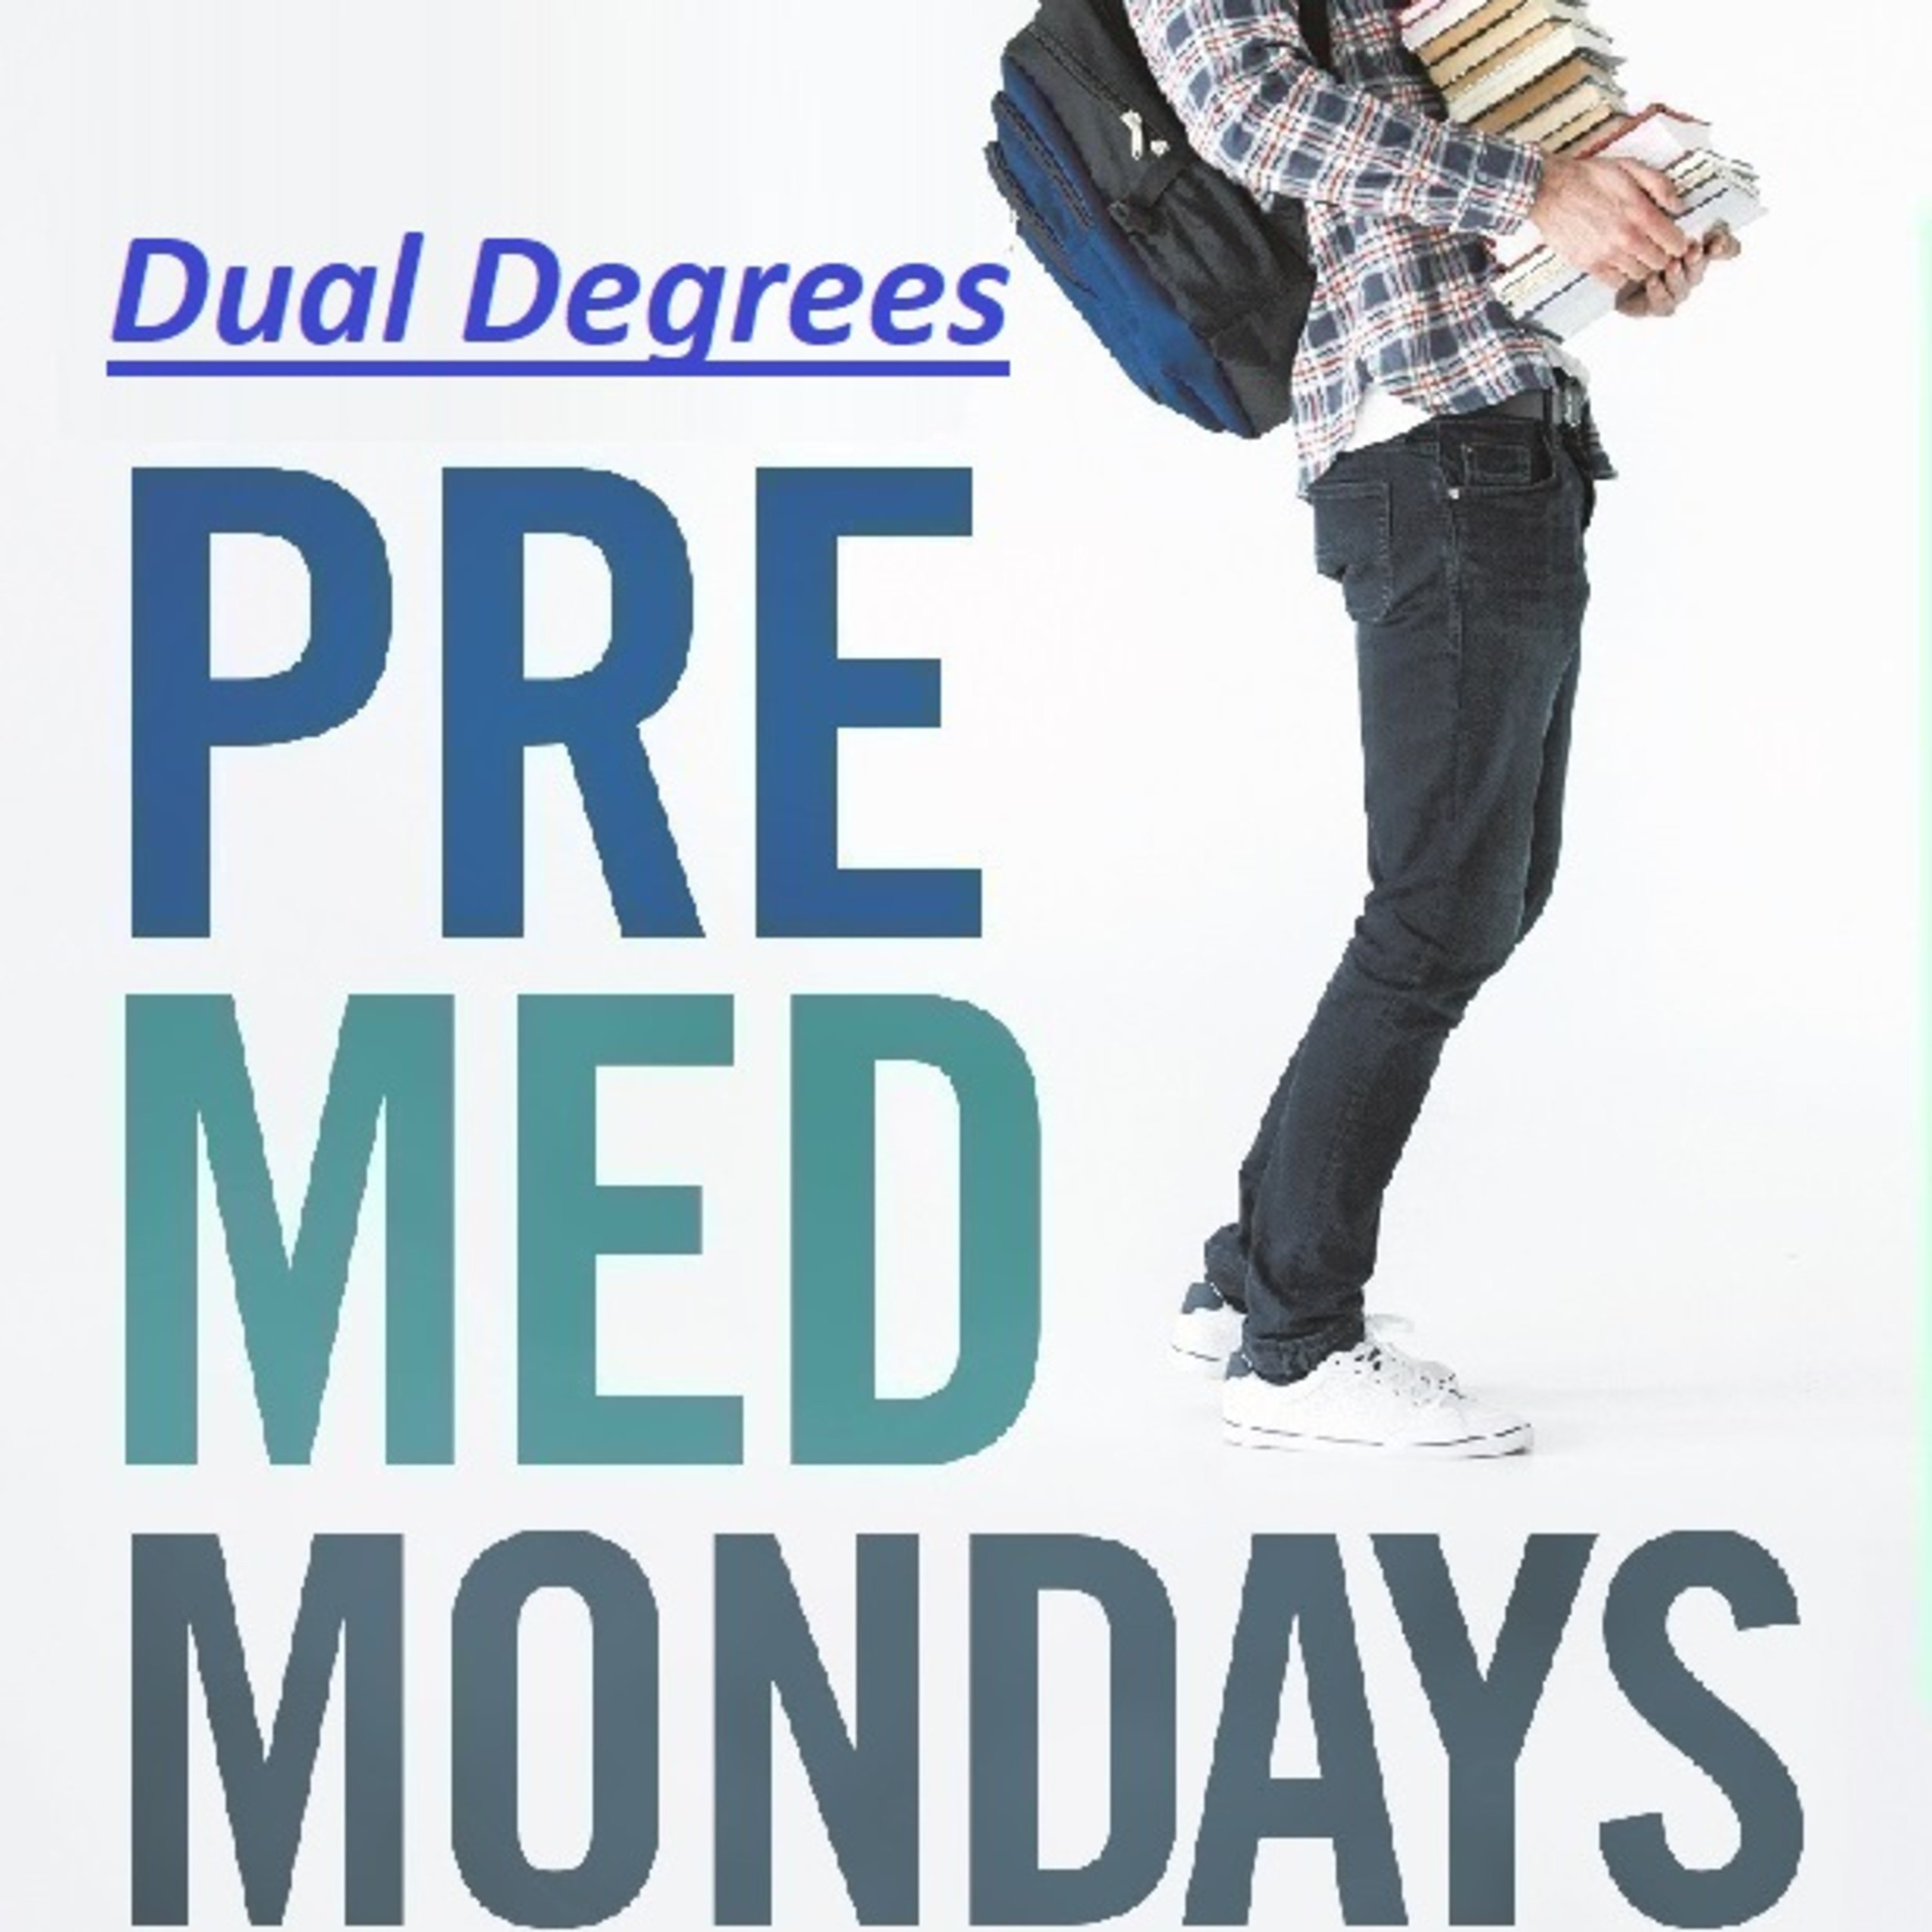 5 Dual Degree Programs to Consider